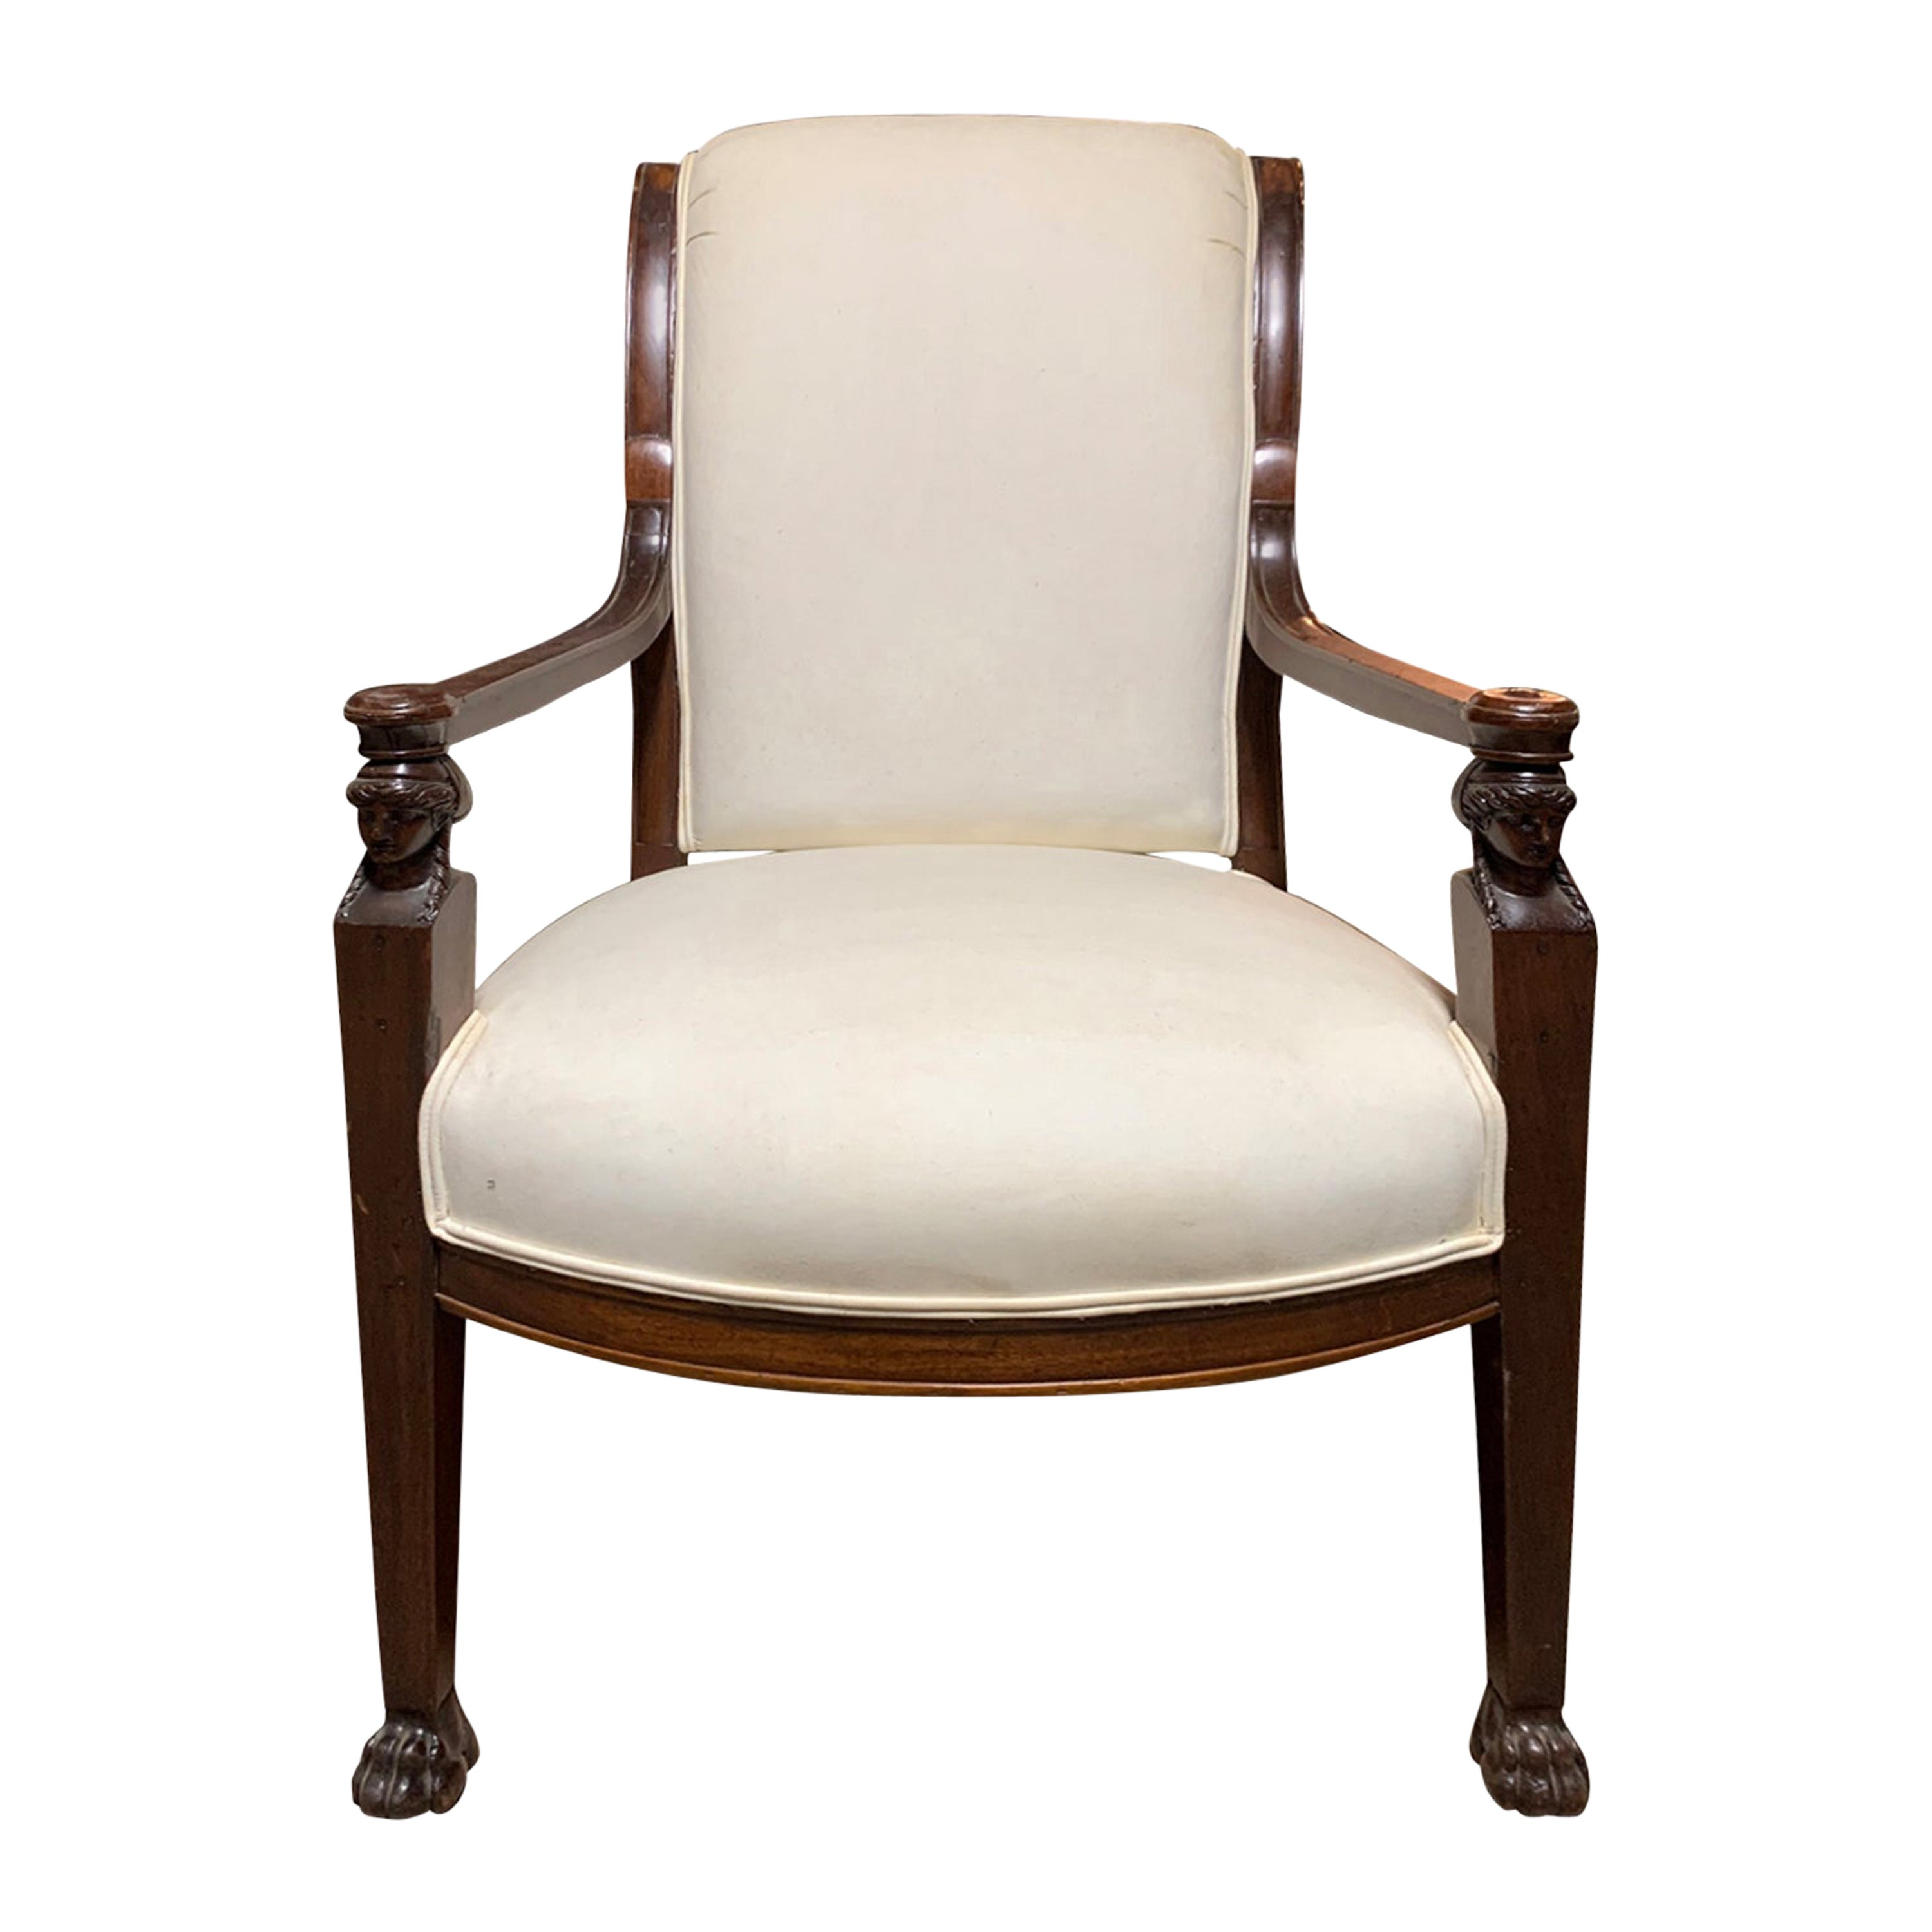 19th Century Empire Style Fruitwood Armchair